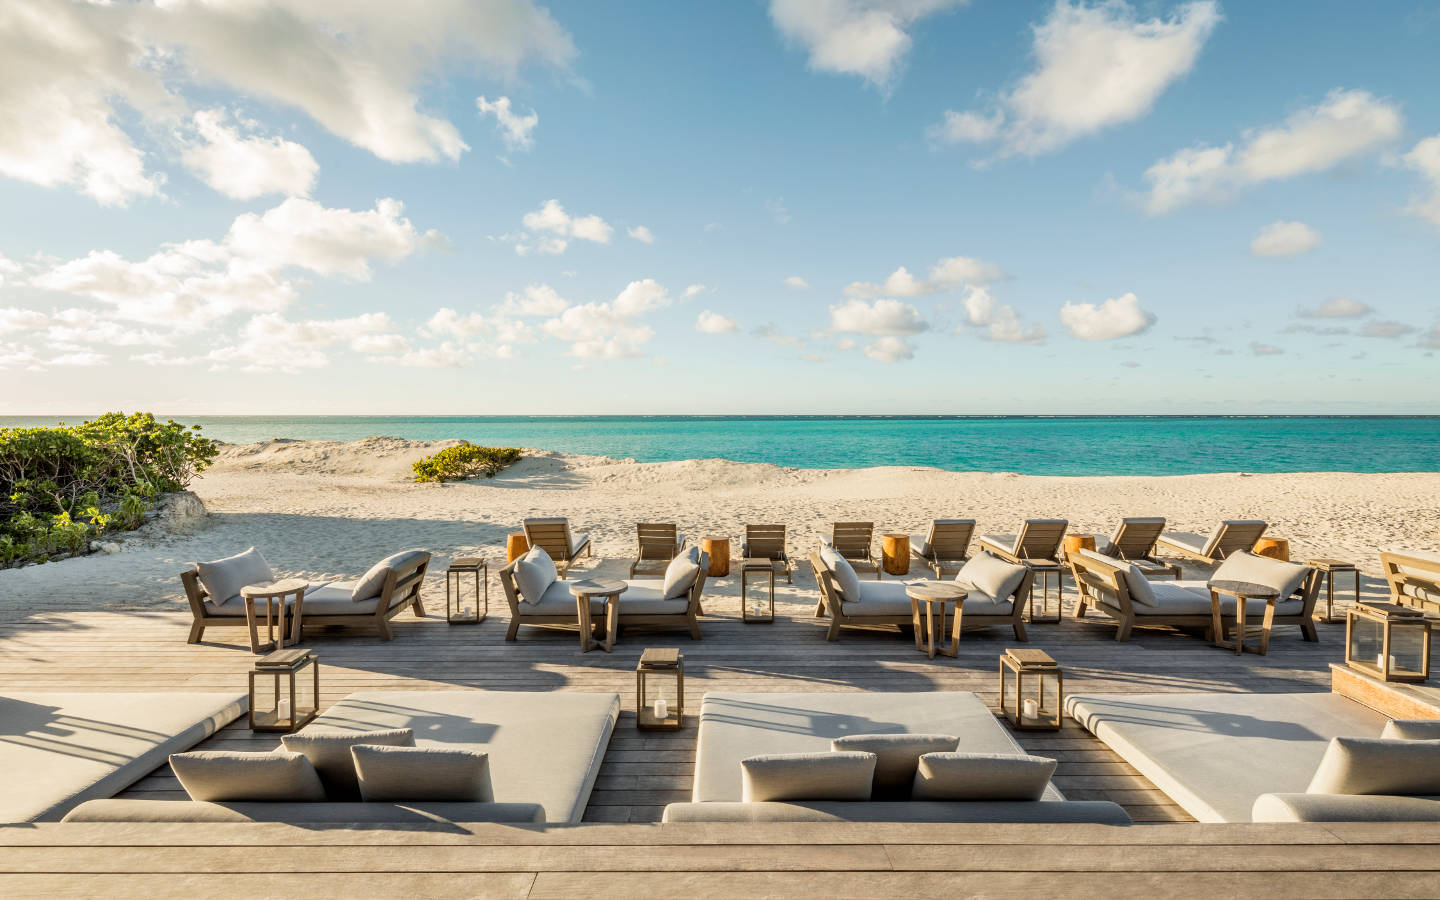 Parrot Cay - view of the beach and daybeds